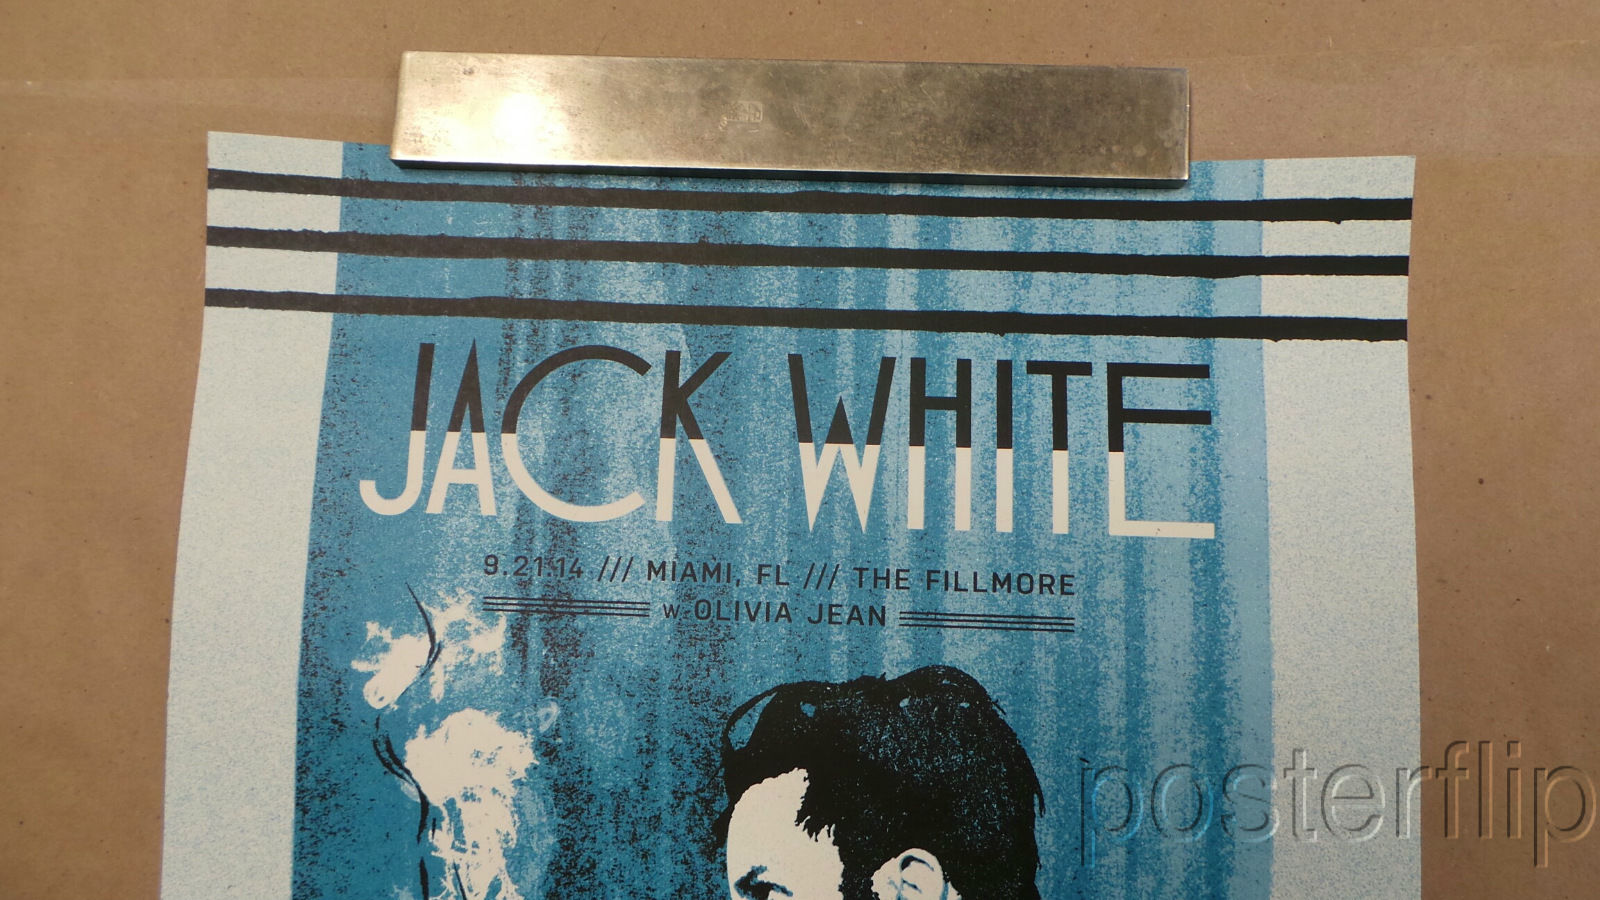 Jack White The Fillmore Miami FL Sep 21 2014 The Silent Giants